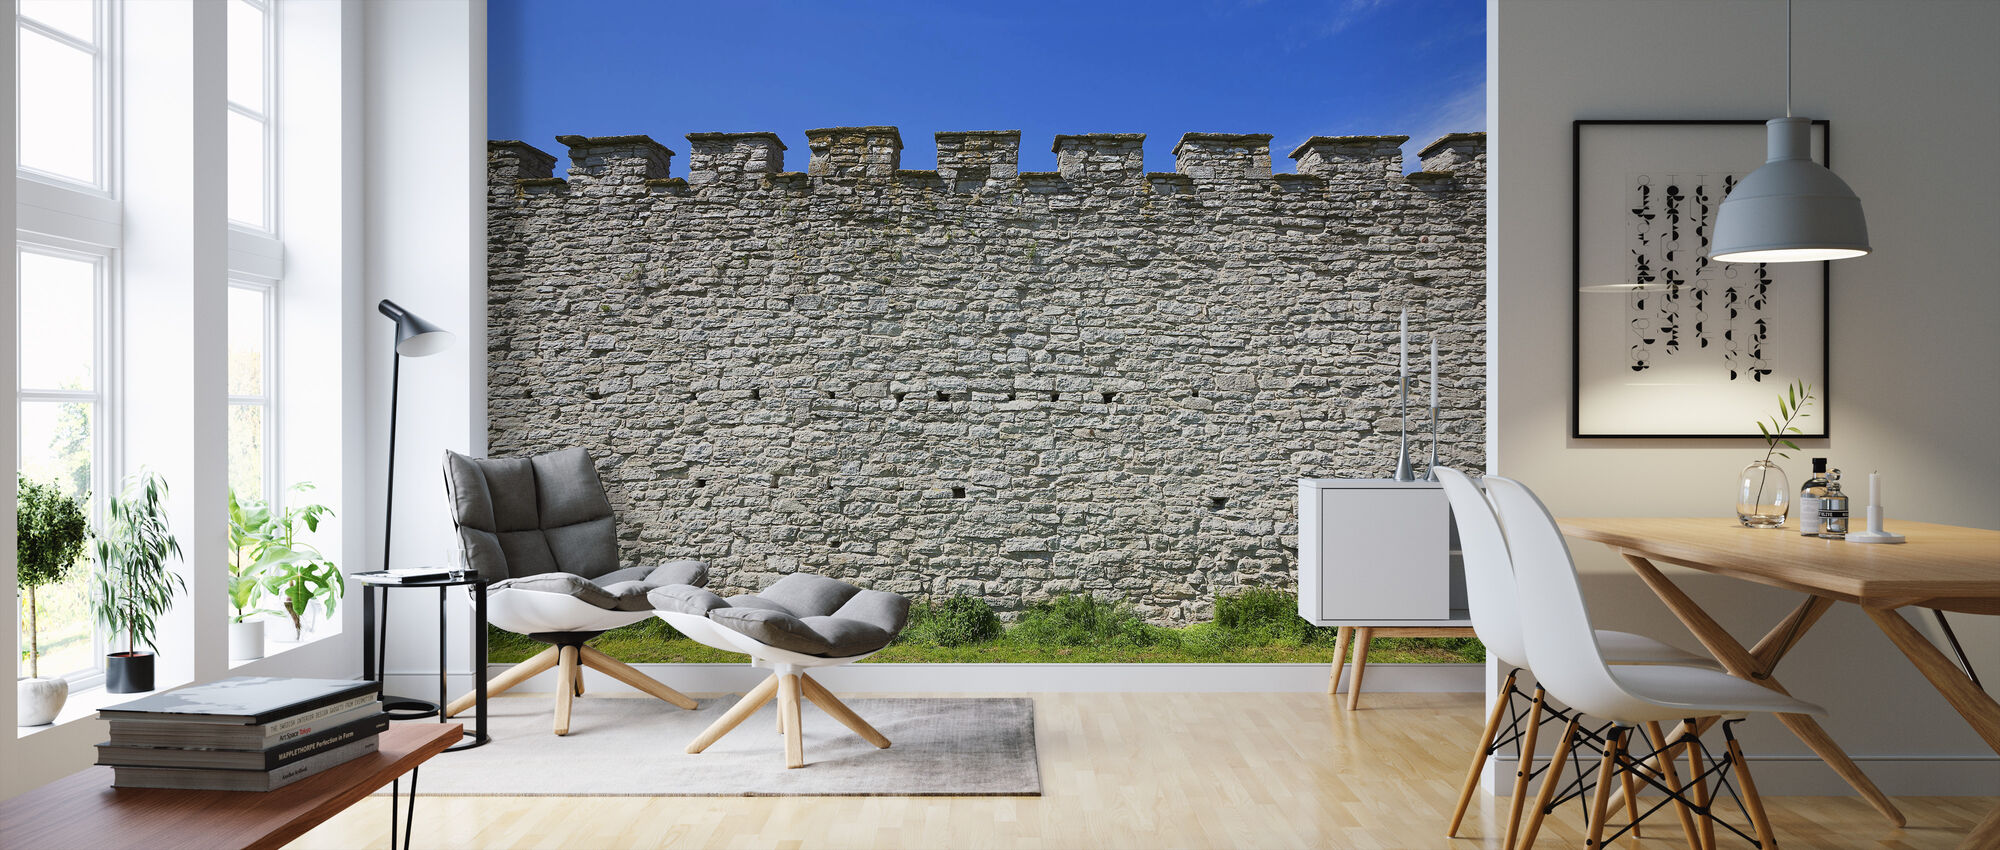 Old Fortress Wall - Wallpaper - Living Room